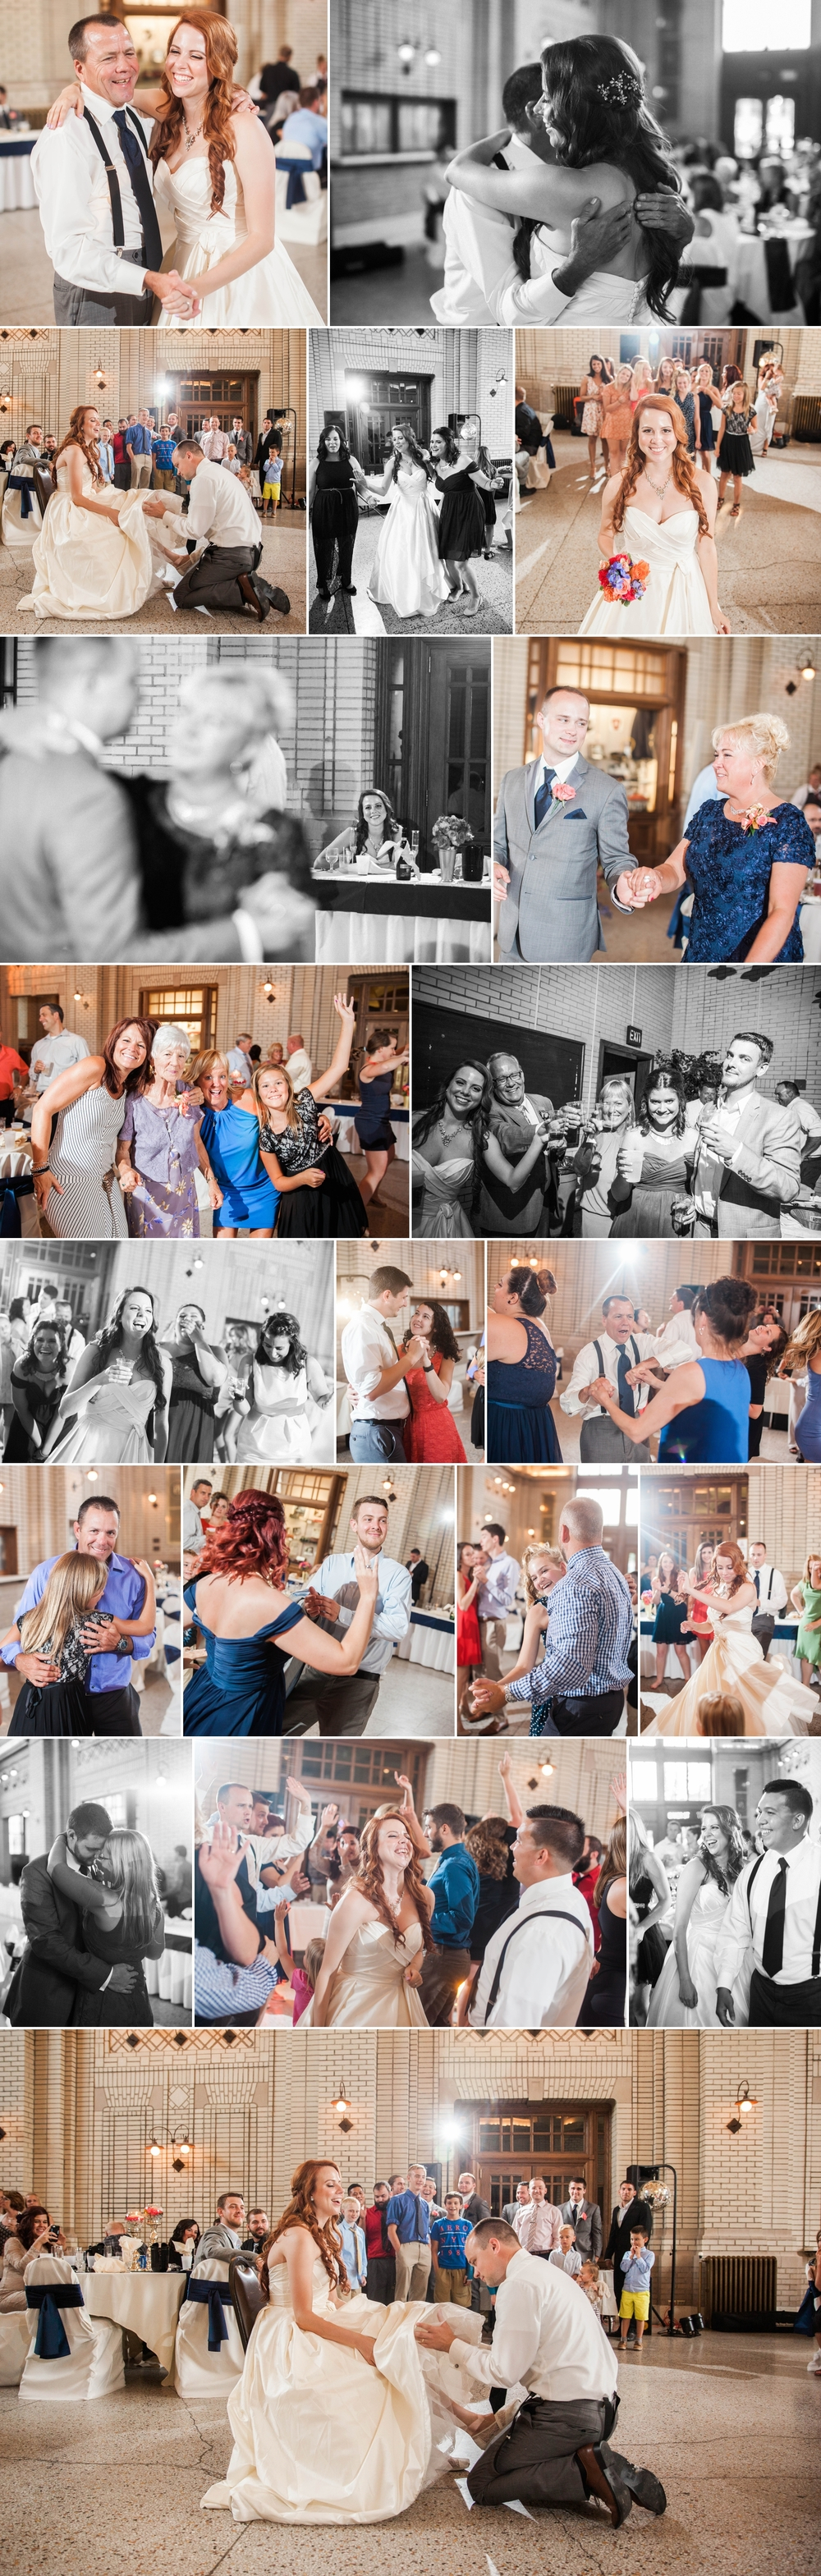 wedding-reception-party-bride-groom-happiness-7